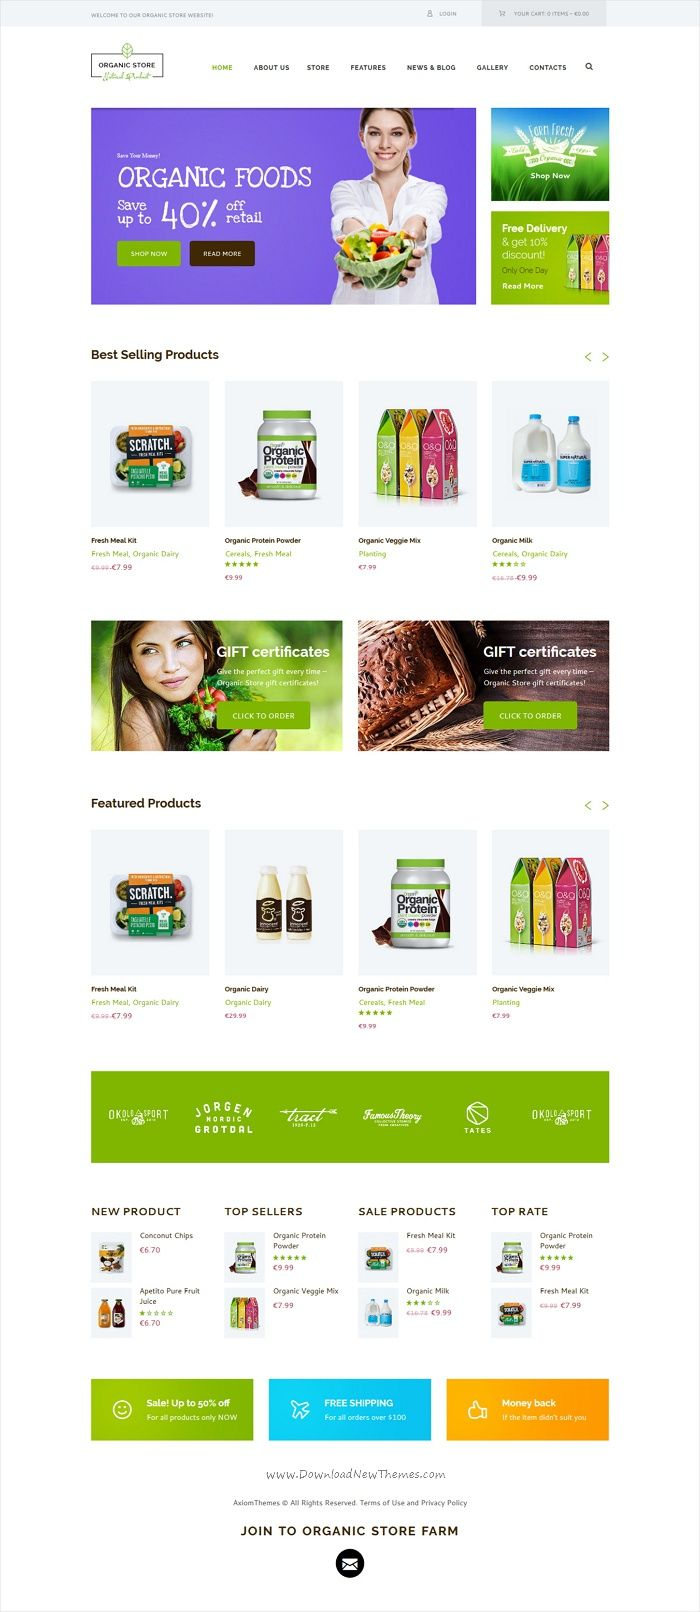 Organic Food & Eco Products Site Template | Pinterest | Eco products ...